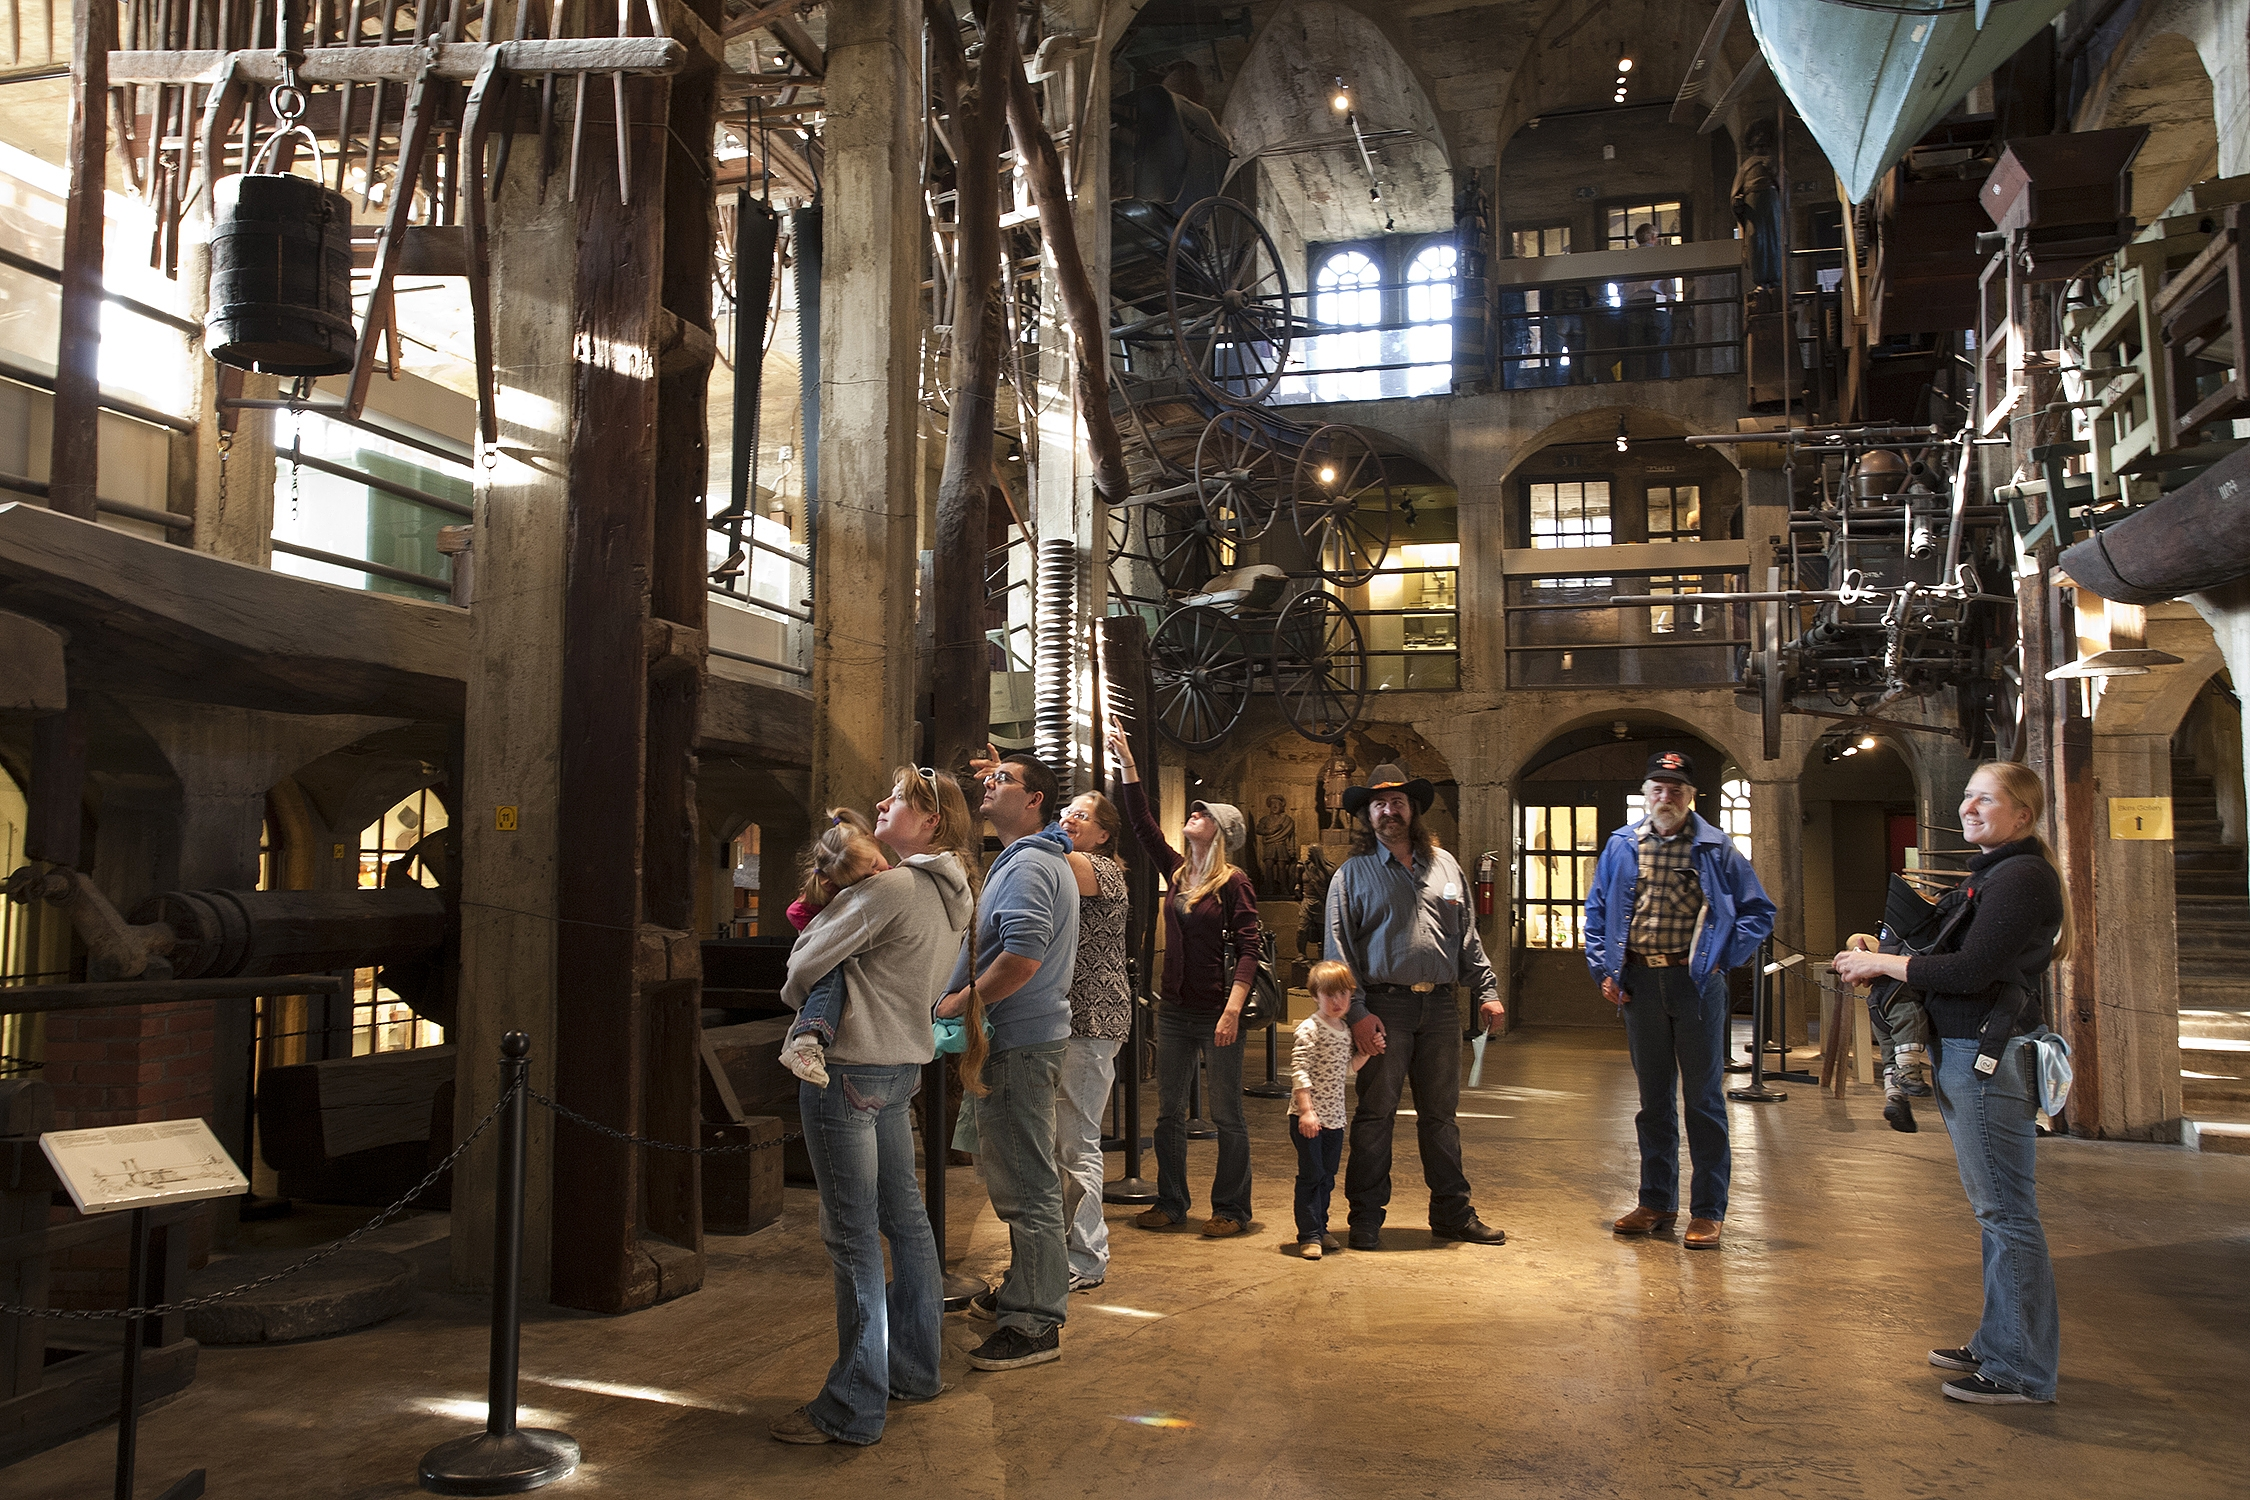 Doylestown museums 39 free day mercer museum fonthill castle for The mercer